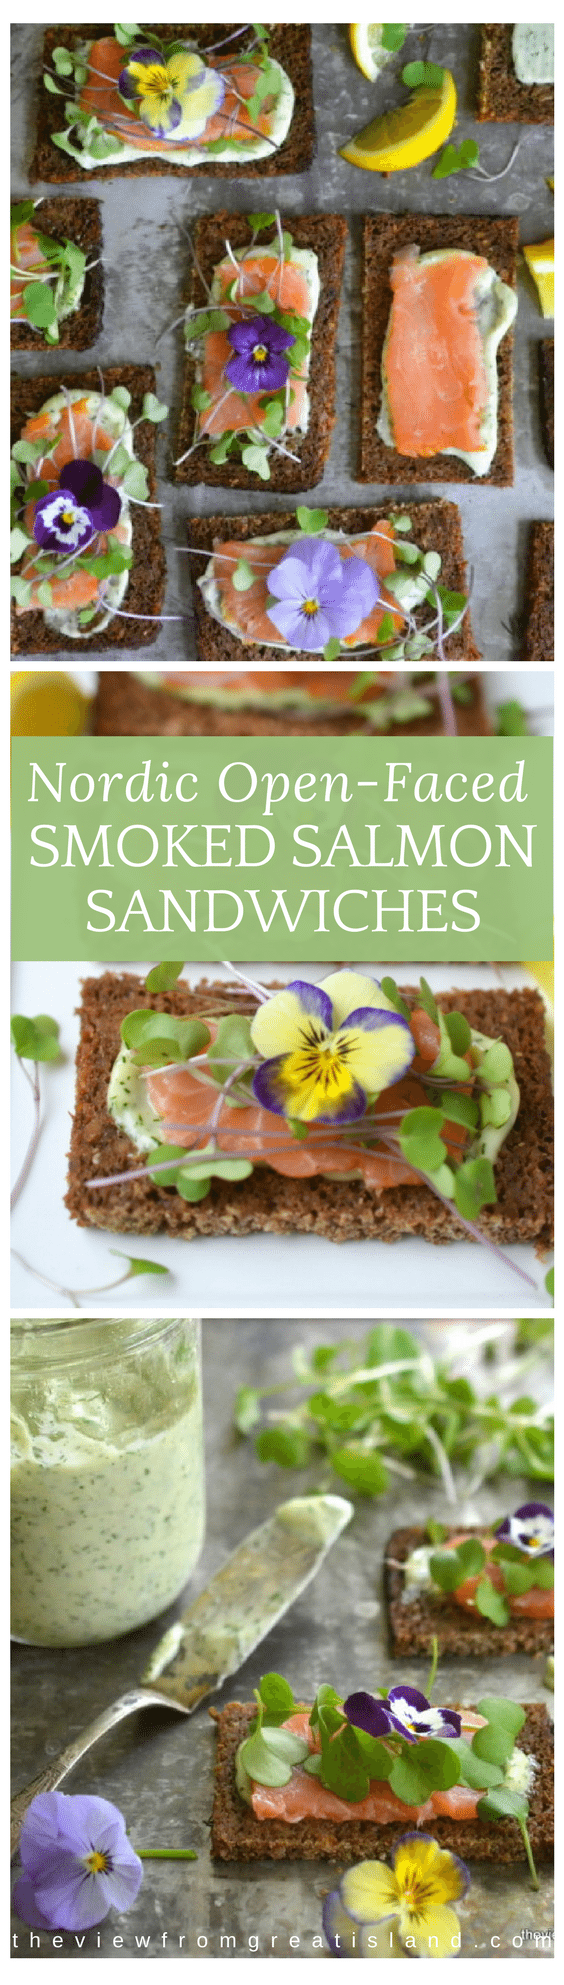 Nordic Open Faced Smoked Salmon Sandwiches are exquisitely delicate and healthy ~ this is clean eating that that also happens to be insanely delicious.#scandinavian #nordic #salmon #smokedsalmon #teasandwiches #snitter #openfacedsandwiches #healthy #afternoontea #hightea